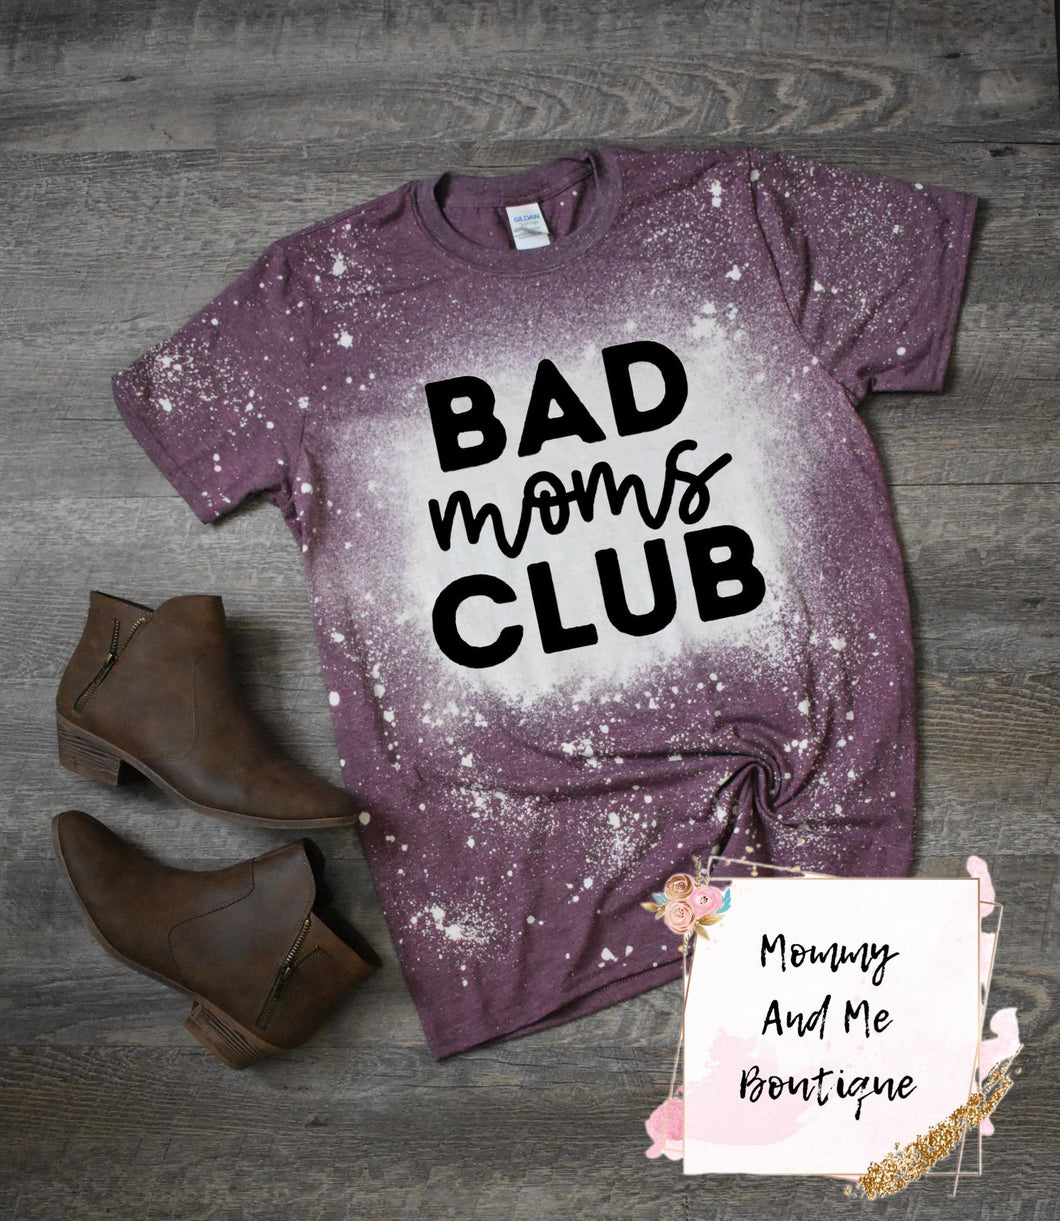 Bad mom's club